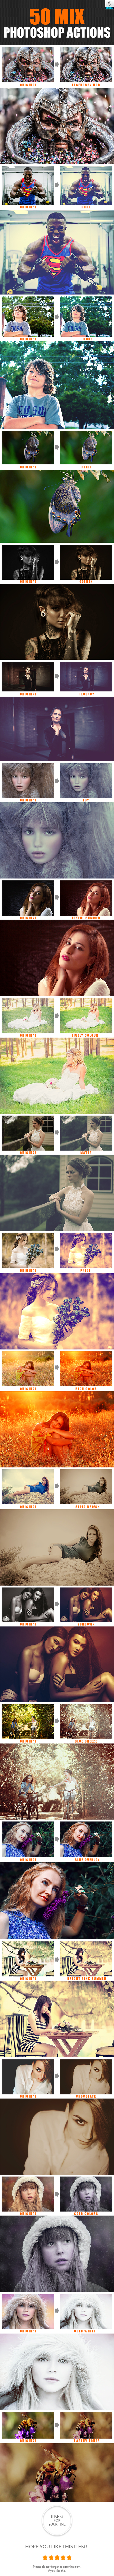 50 Mix Photoshop Actions - Actions Photoshop